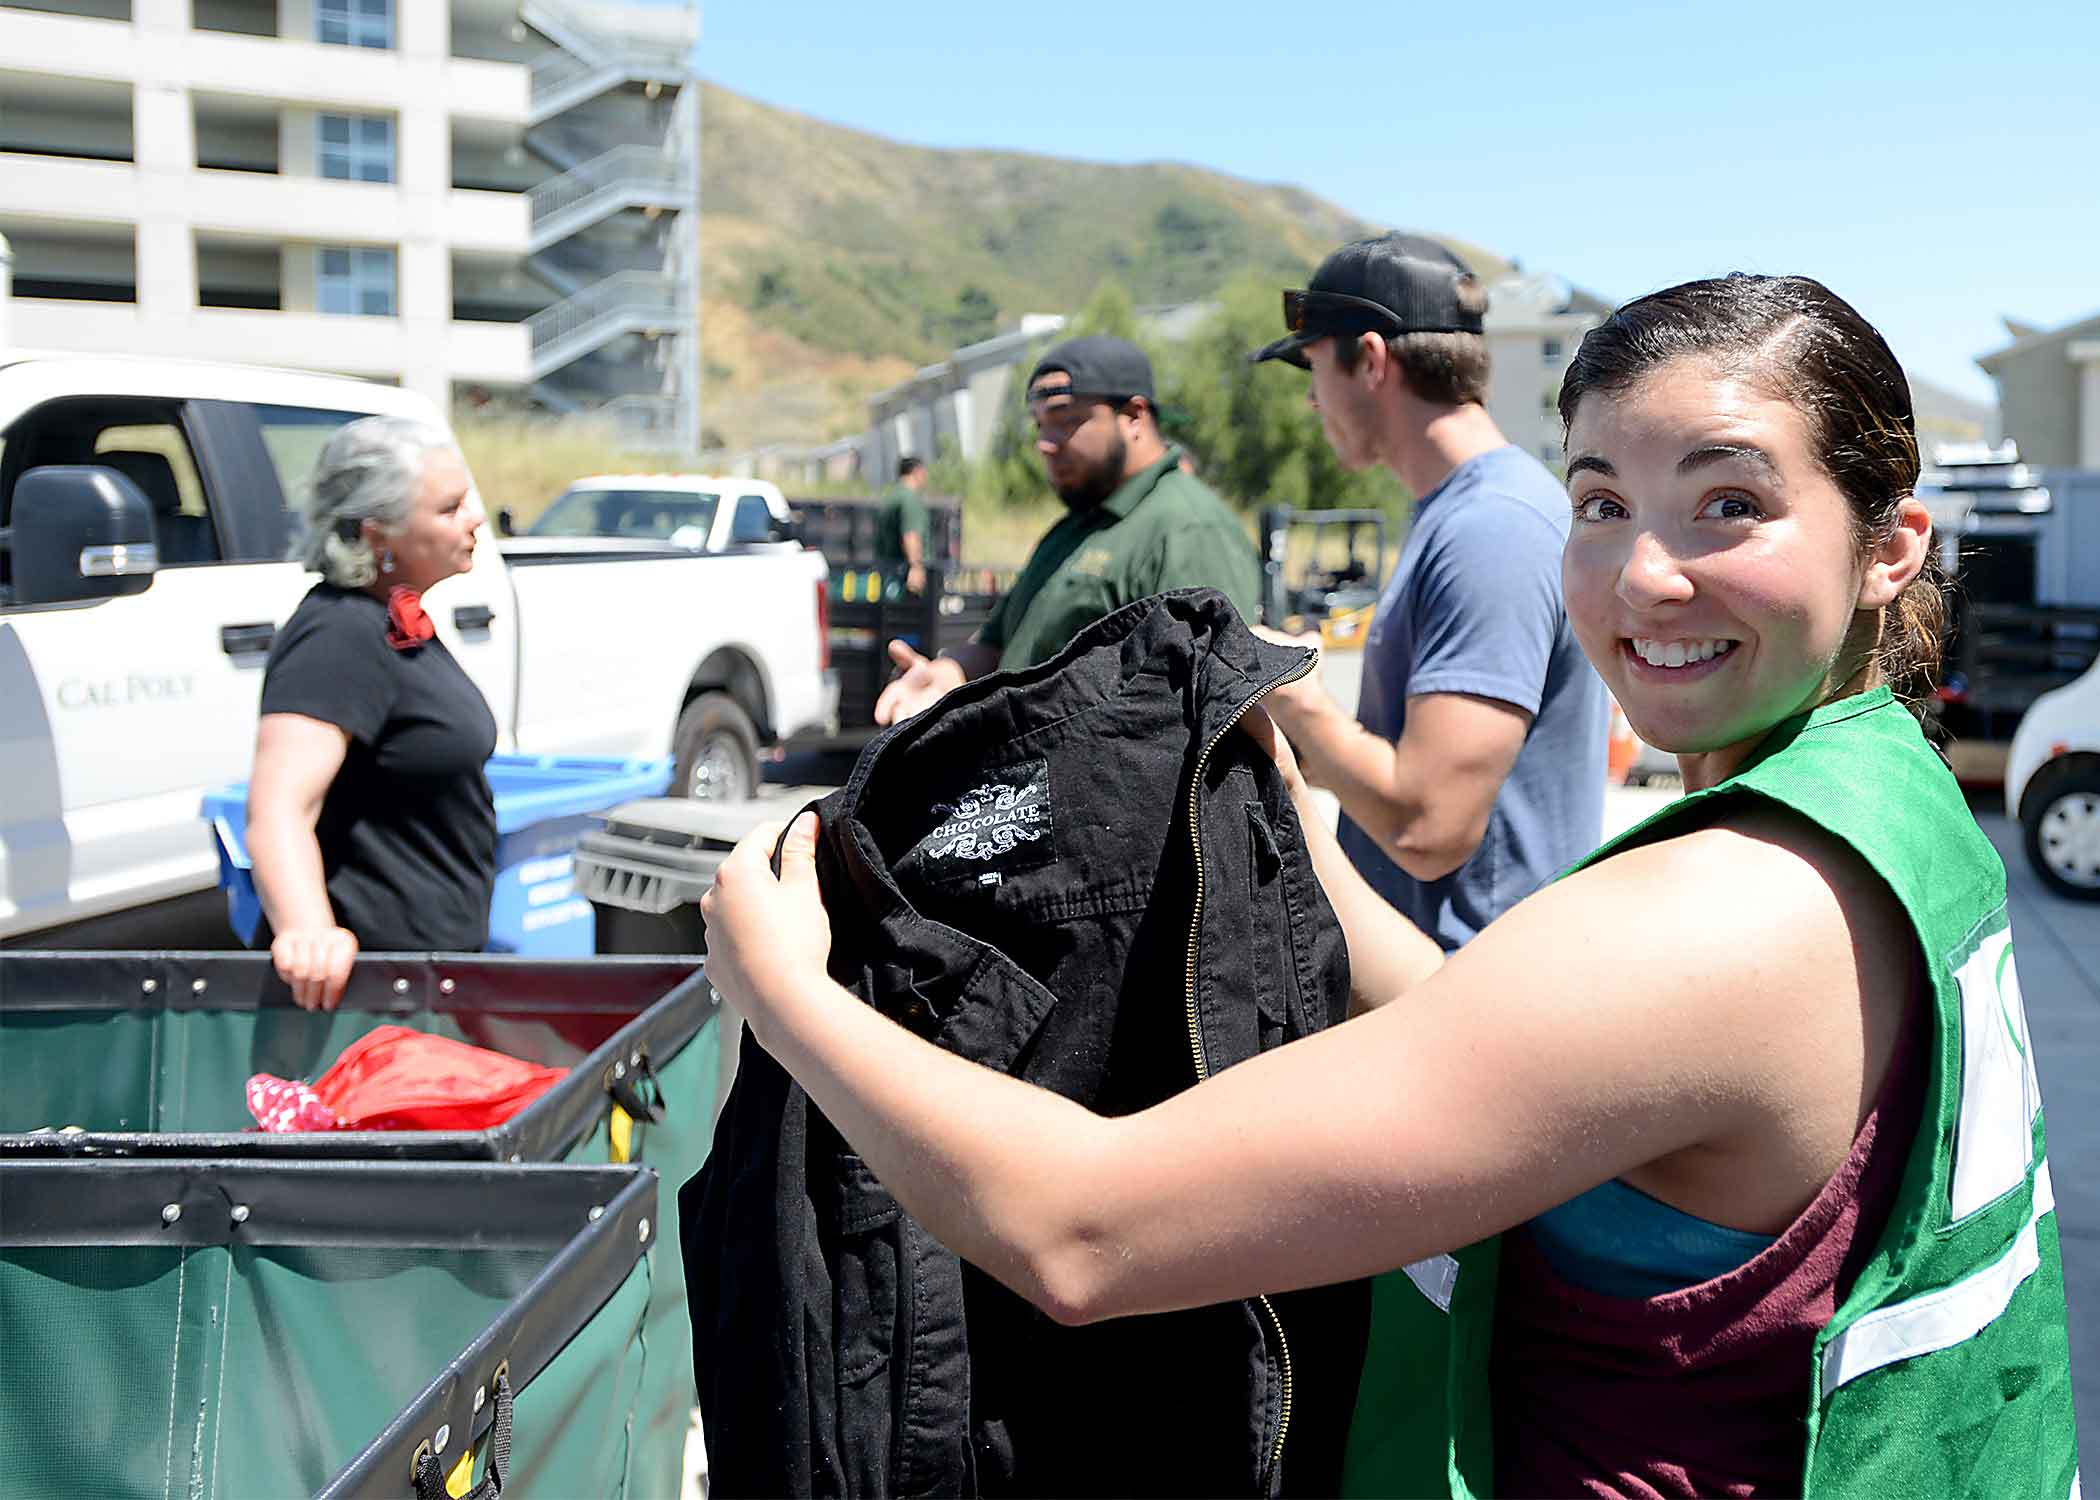 Sydney Sierras, nutrition major from San Jose, helps sort donated clothes as SLO Mayor Heidi Harmon talks to some constituents.